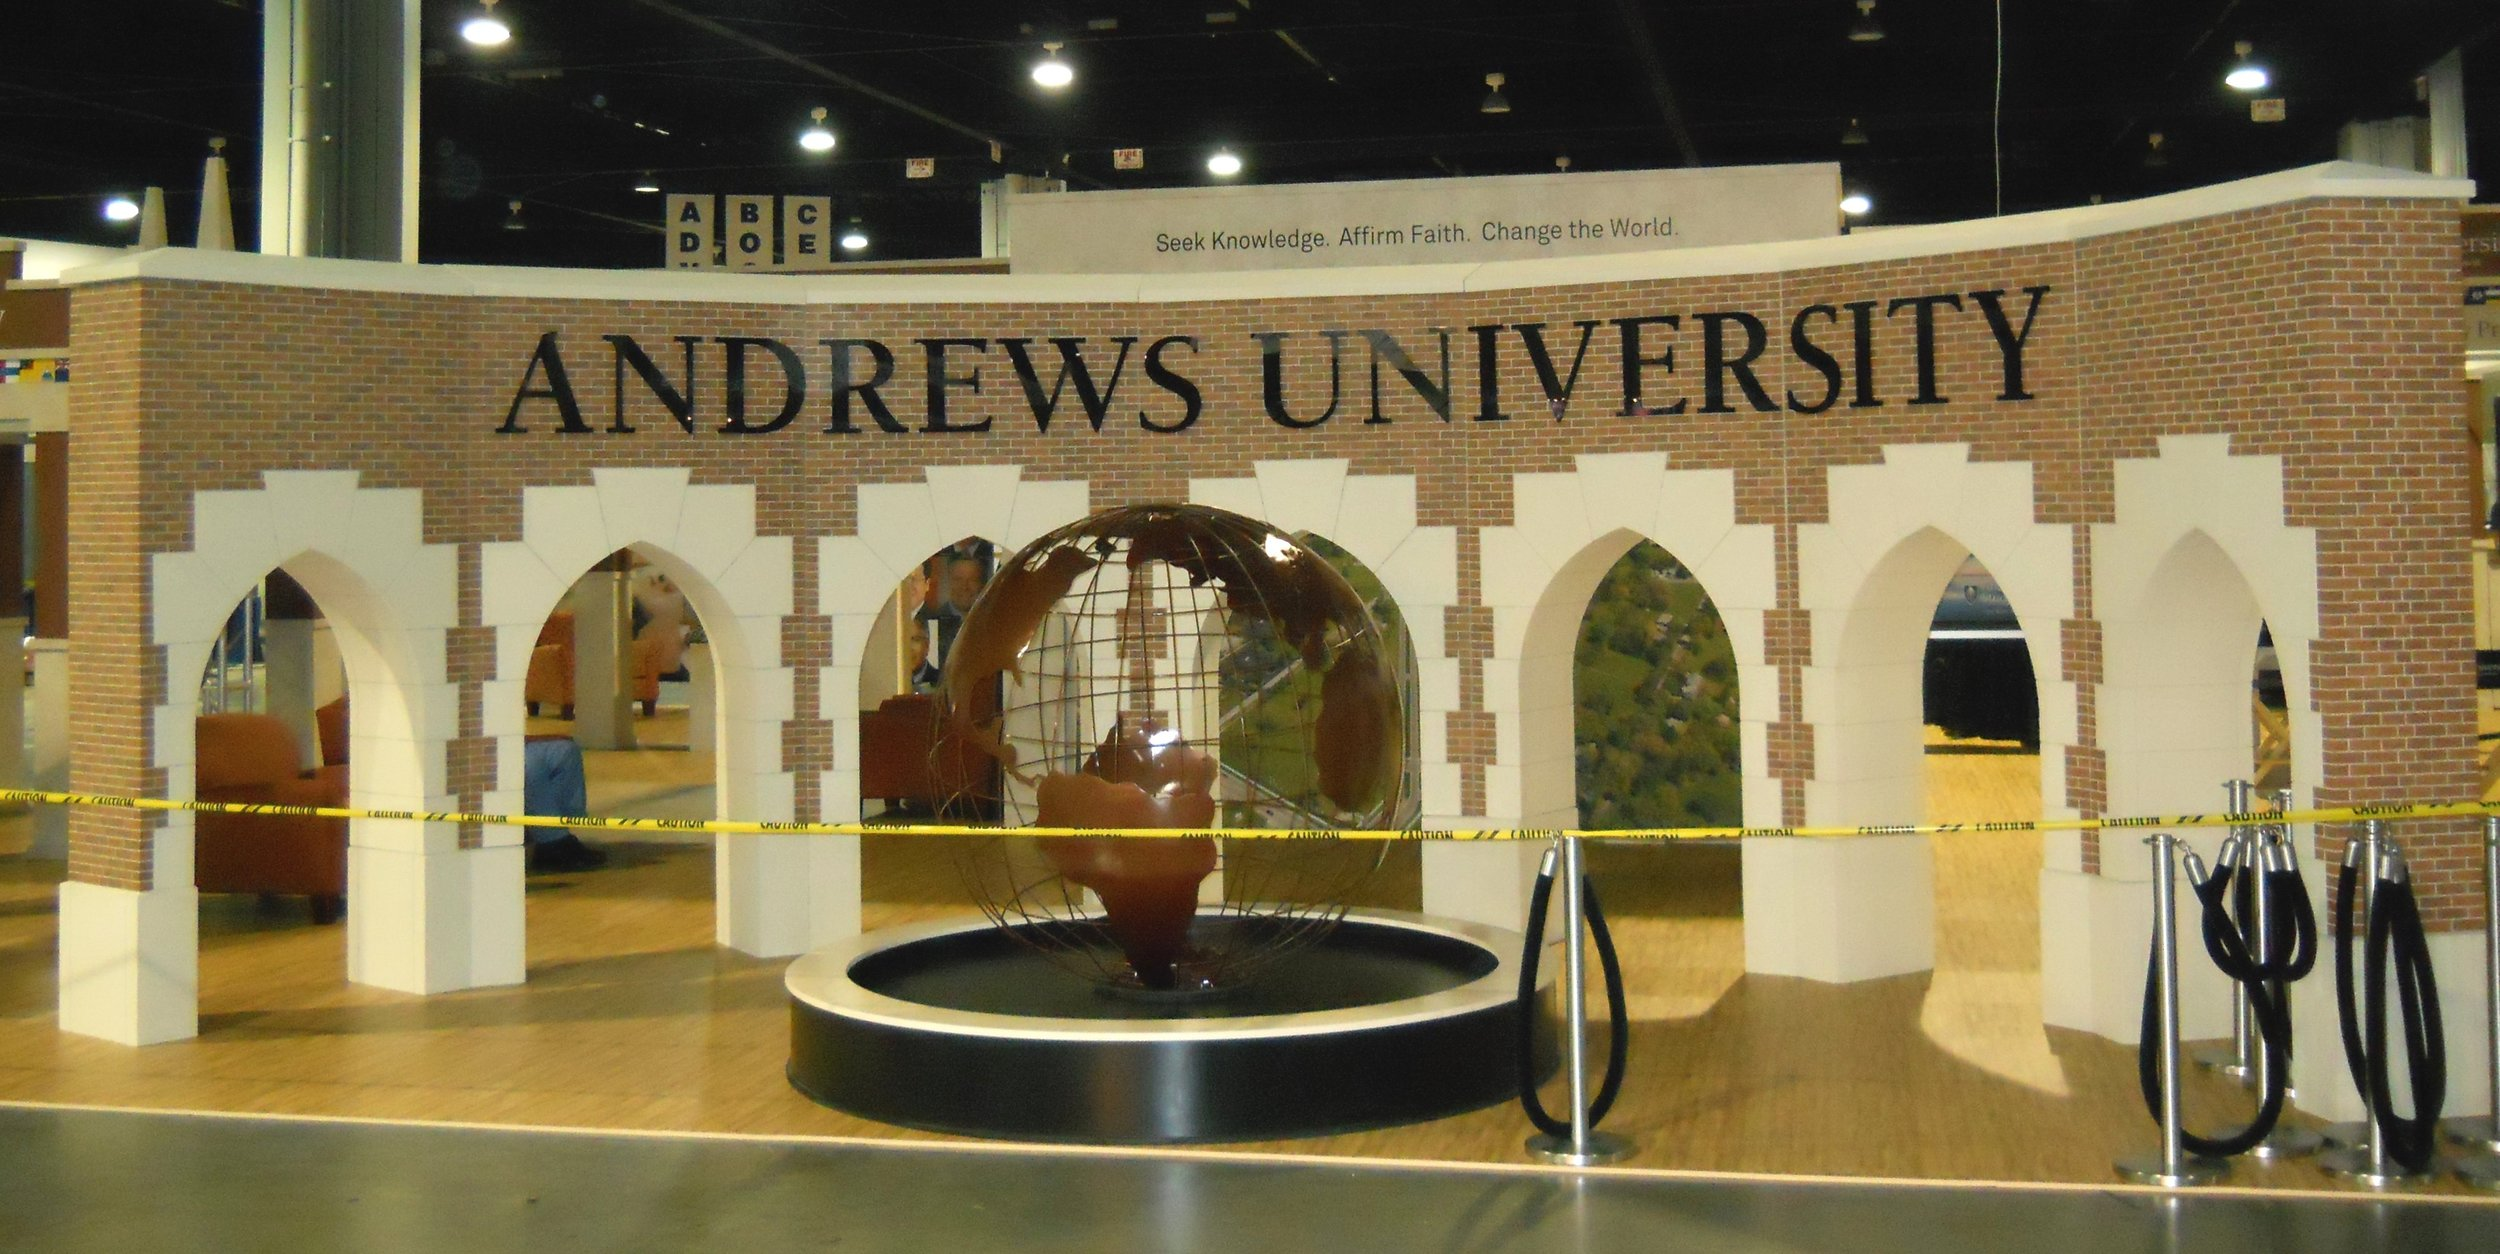 Display for Andrews University in Berrien Springs MI. The arches are an exact 1/2 scale replica of the arches in front of the university. They are made out of EPS.